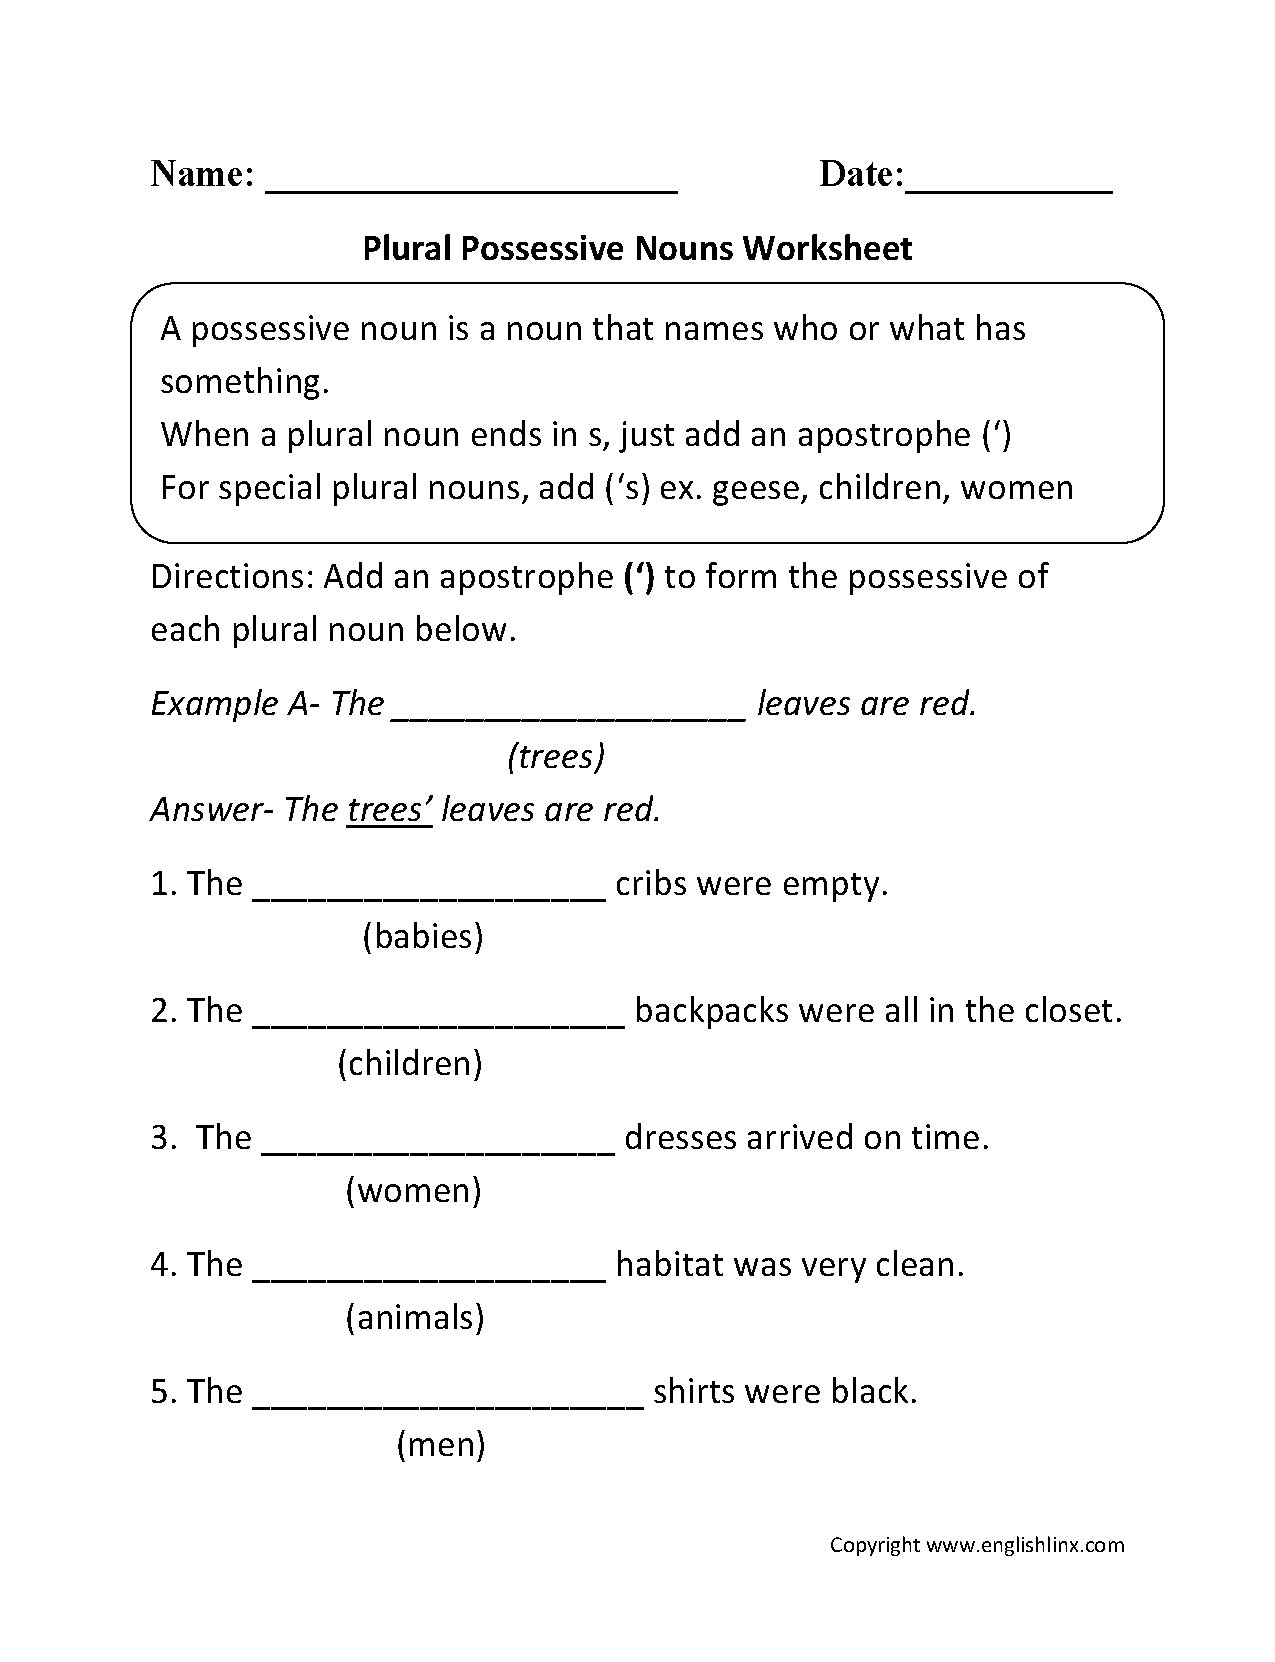 worksheet. Plural Possessive Nouns Worksheet. Grass Fedjp ...